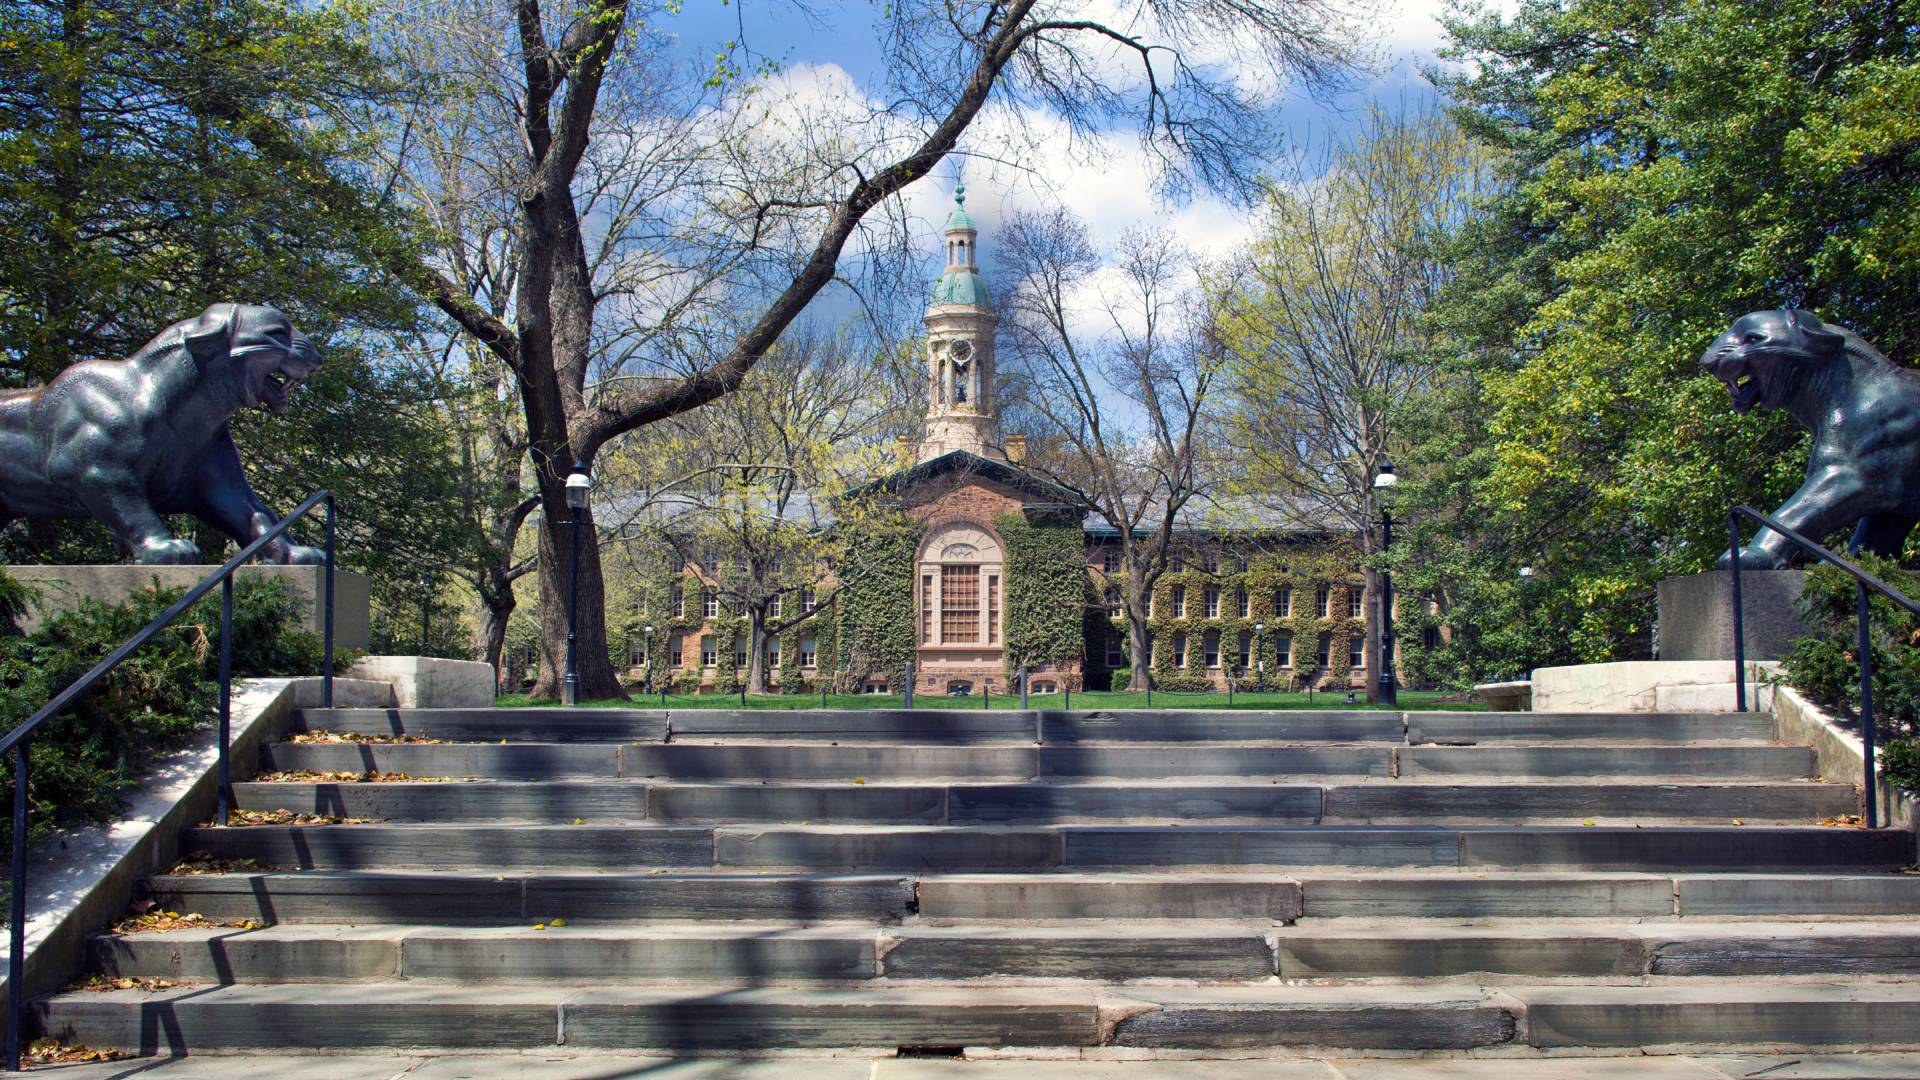 Stairs lead to area behind Nassau Hall building